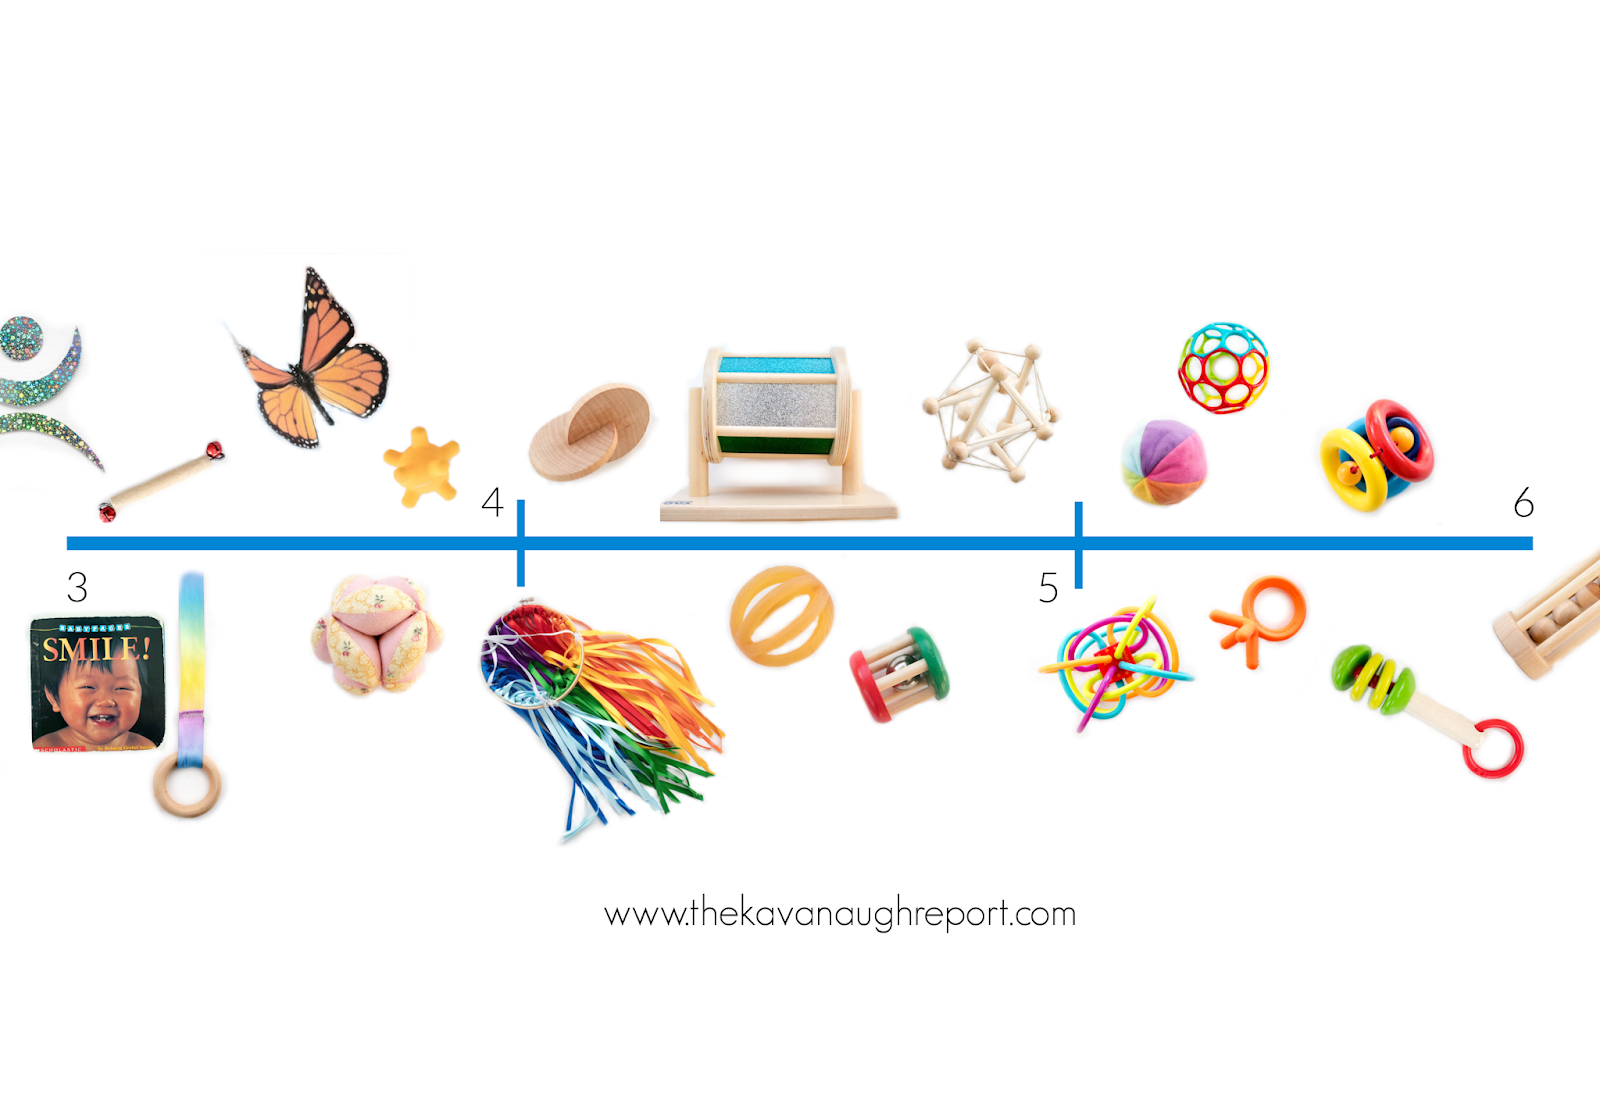 A visual timeline for Montessori friendly play from 3 months to 6 months, including resources for using materials